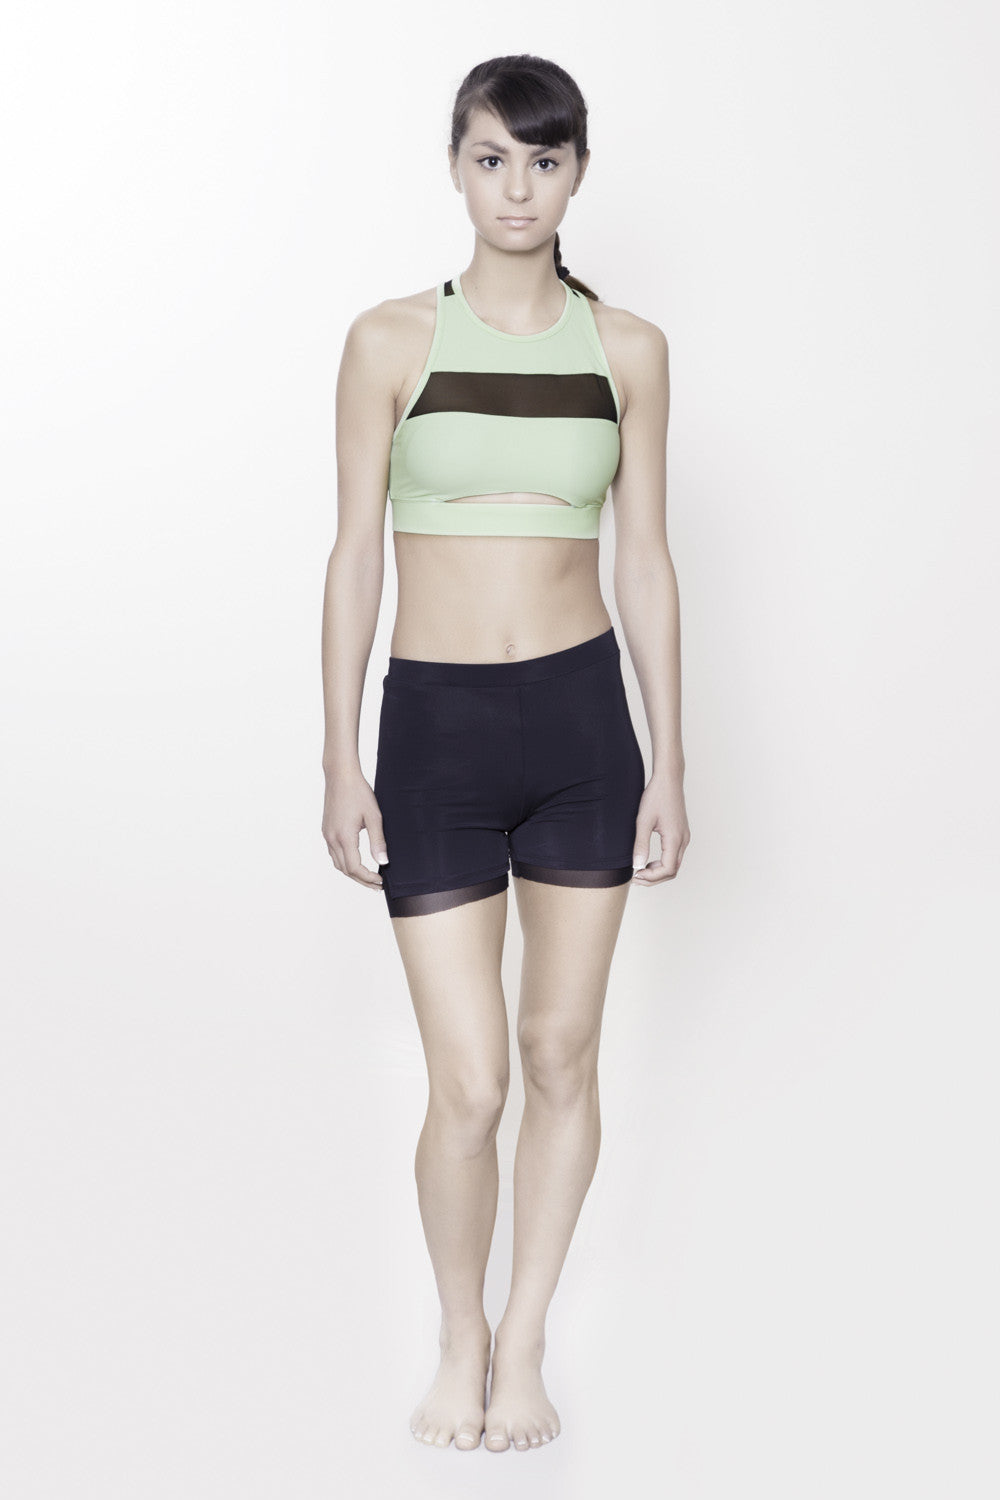 Midriff Cutout Bratop in Mint.